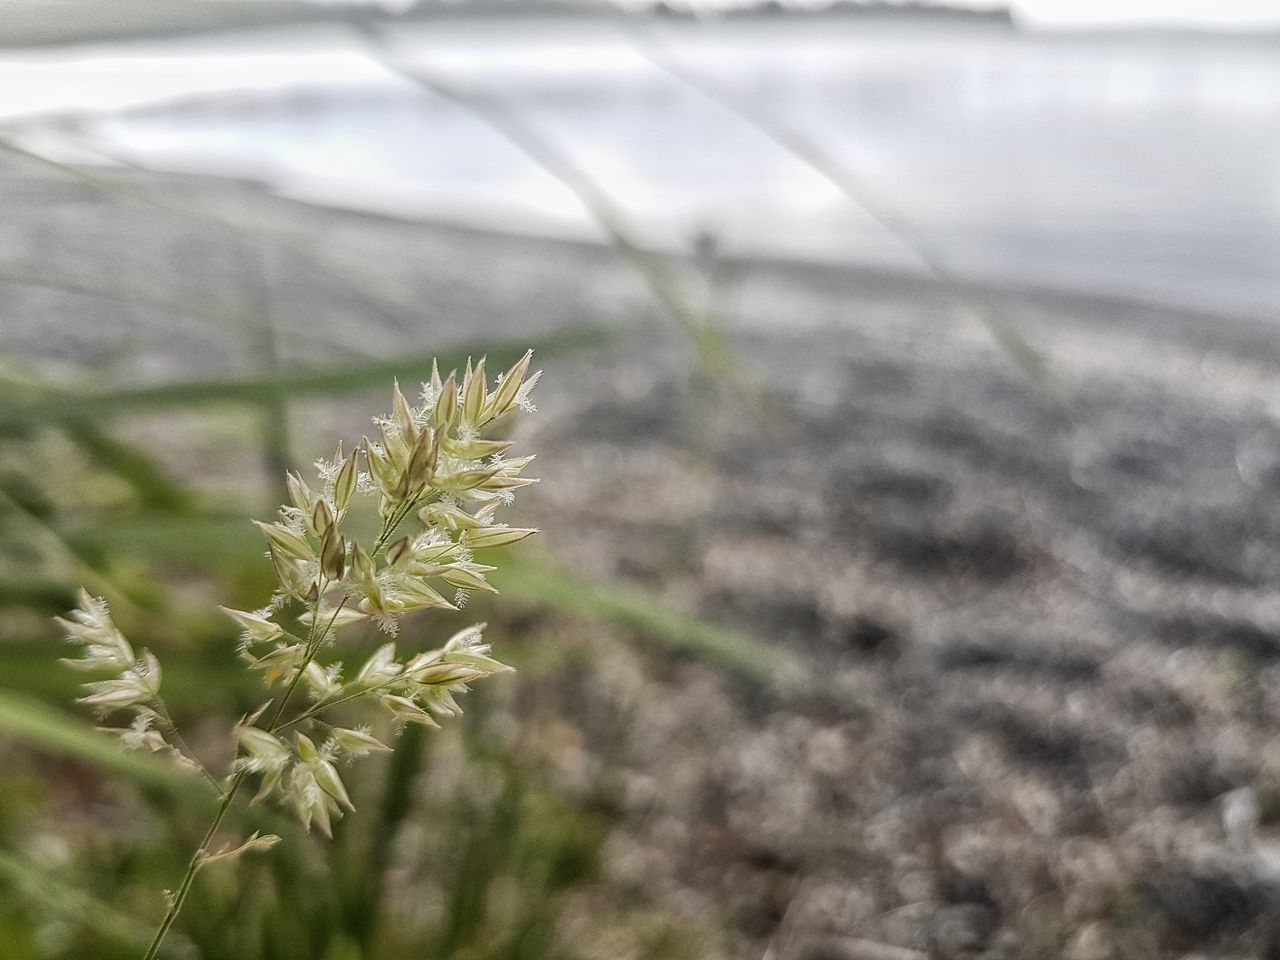 Nature Growth Close-up Outdoors Beauty In Nature Plant No People Day Cold Temperature Plants And Flowers Green Lake Peace And Quiet Life High Angle View Focus Simplicity Fragility Flower Head Freshness Leaf Water Meditation Common EyeEm Nature Lover